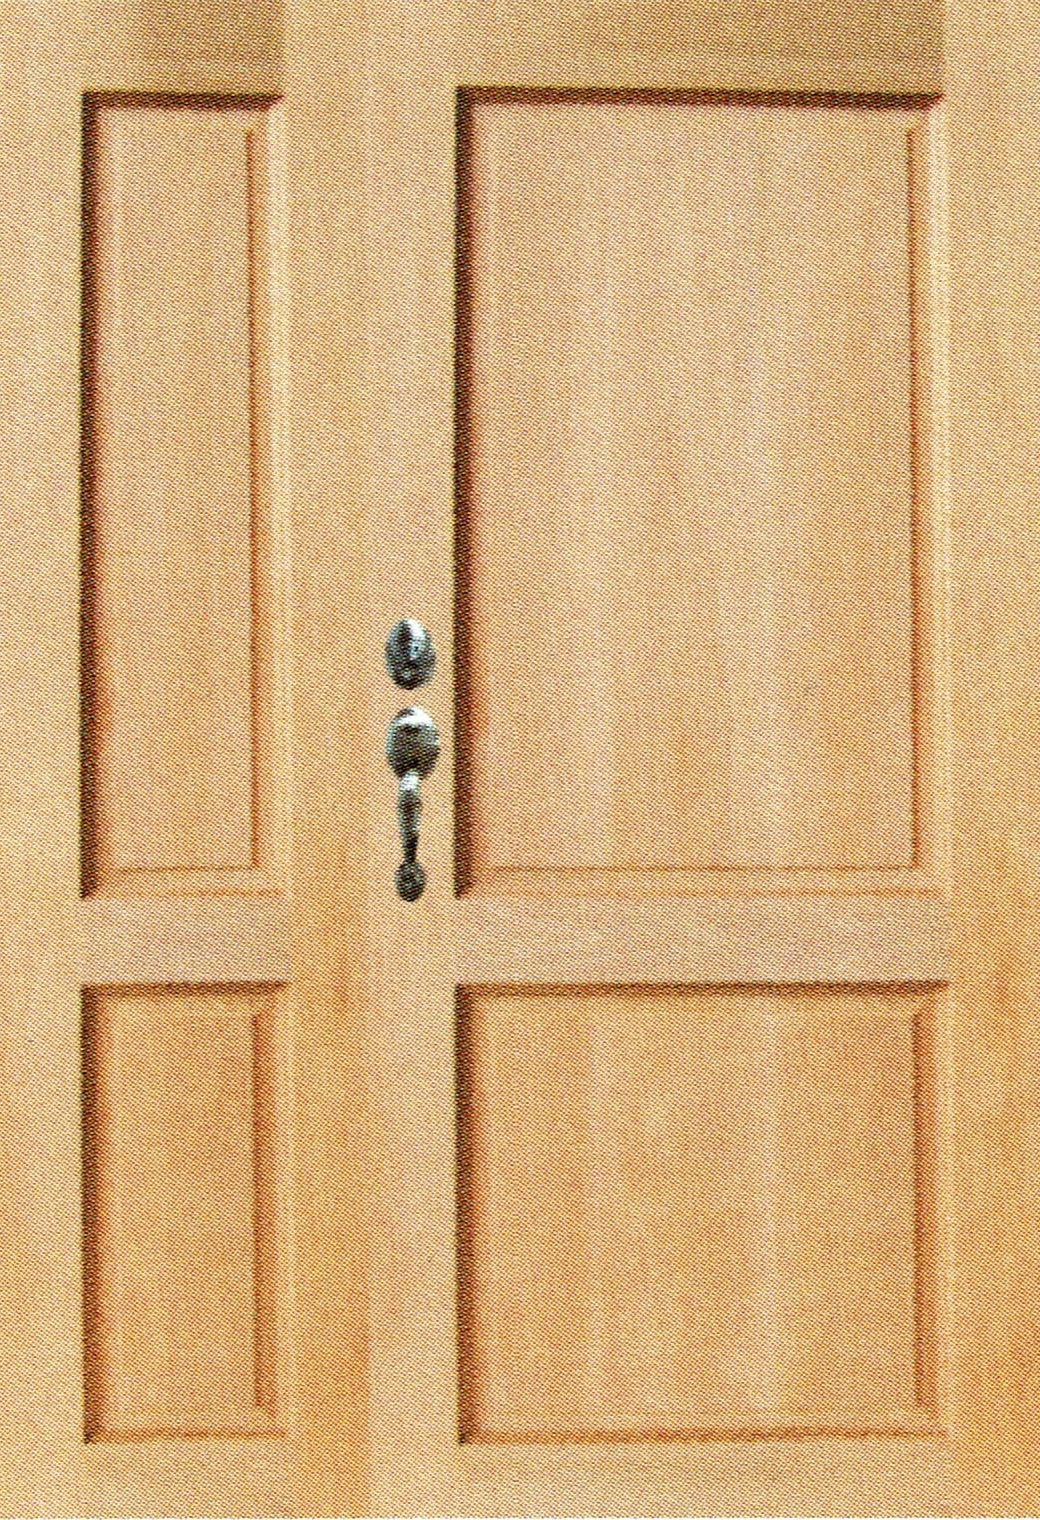 ST 32D(Solid Timber Door (Double Leaf Unequal Leaf))